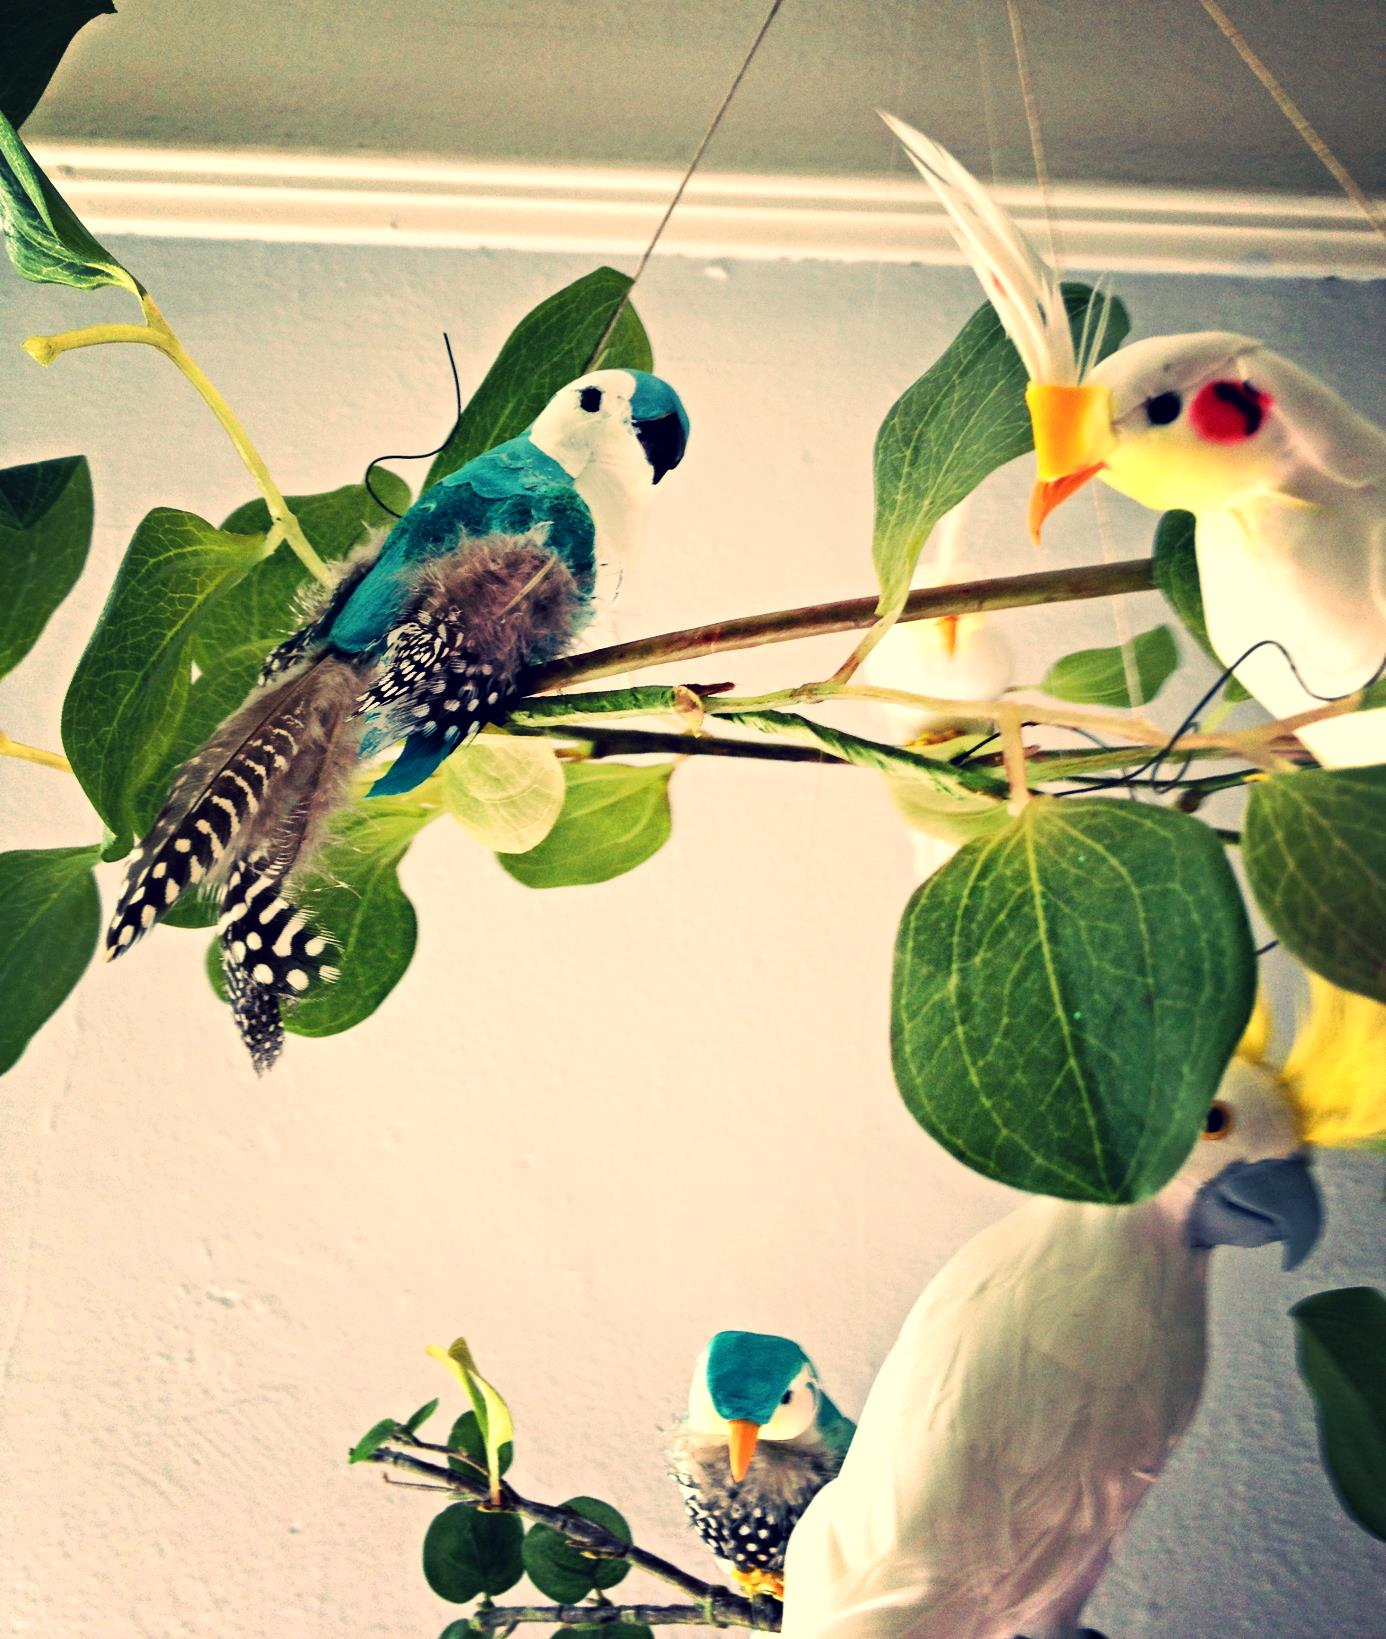 Parrots and cockatiels floating on jungle vines, handmade baby mobile by Cass & Merlune.